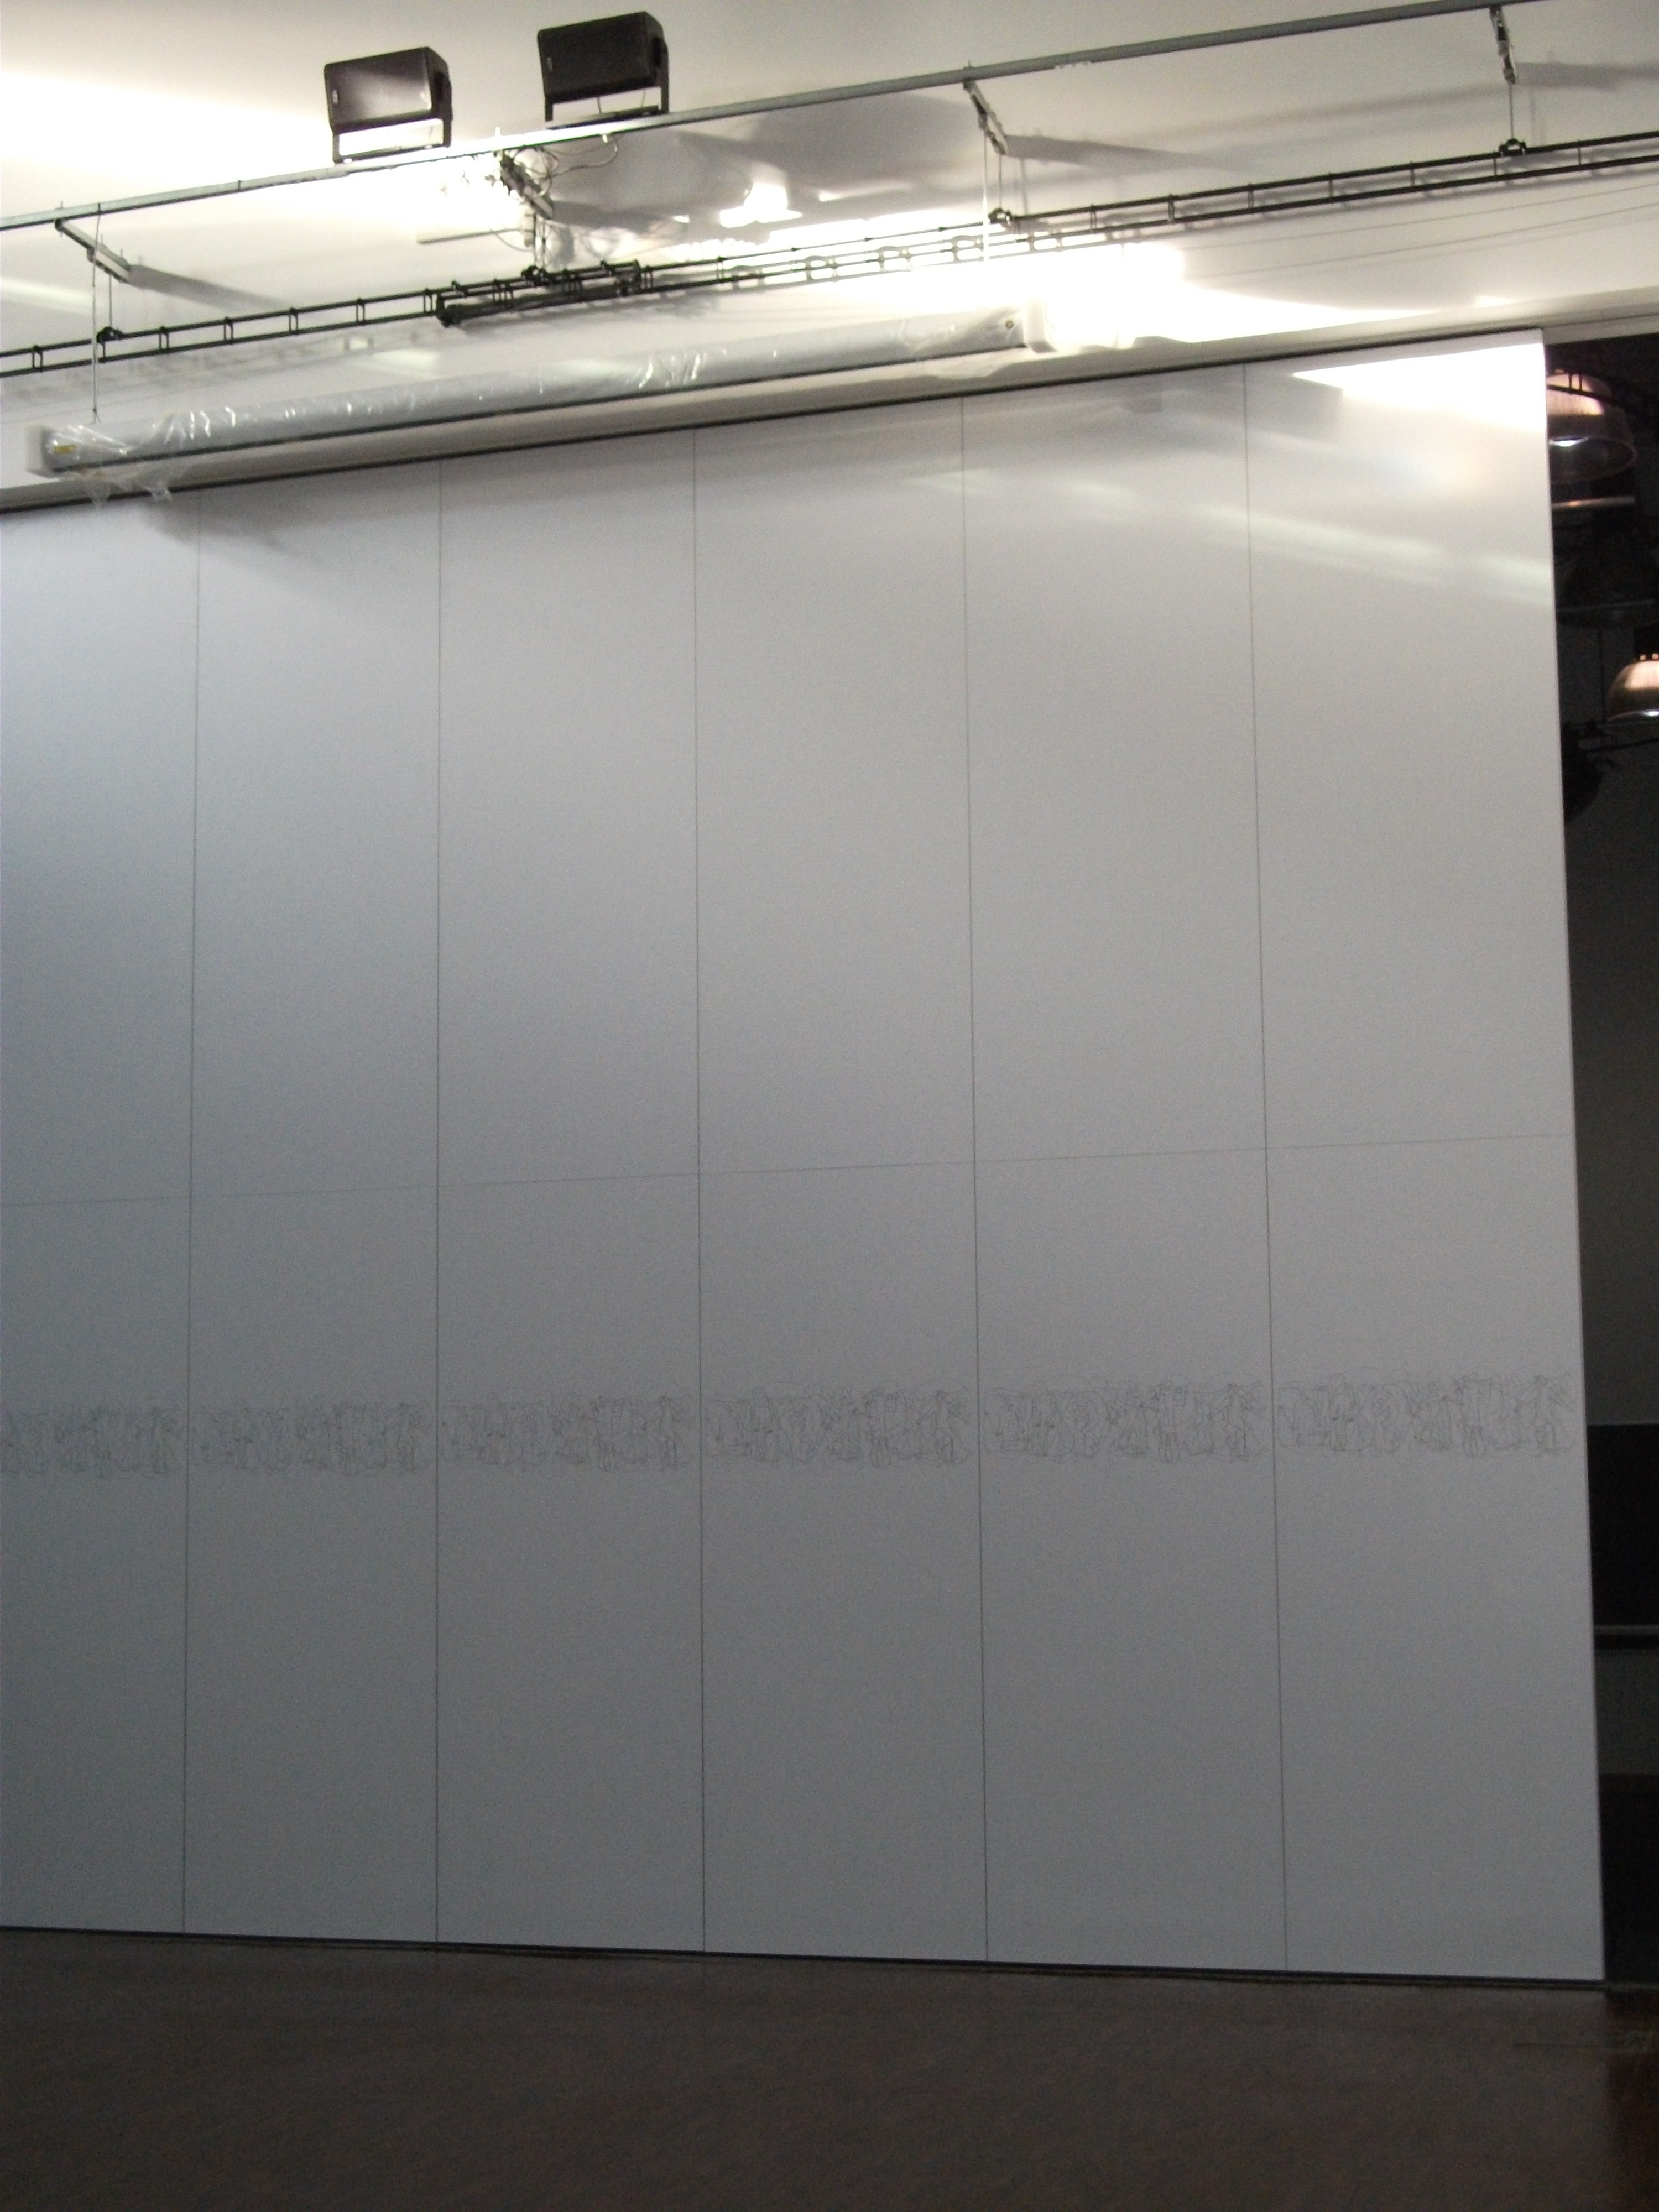 somerset college stage partition installed by Building Additions